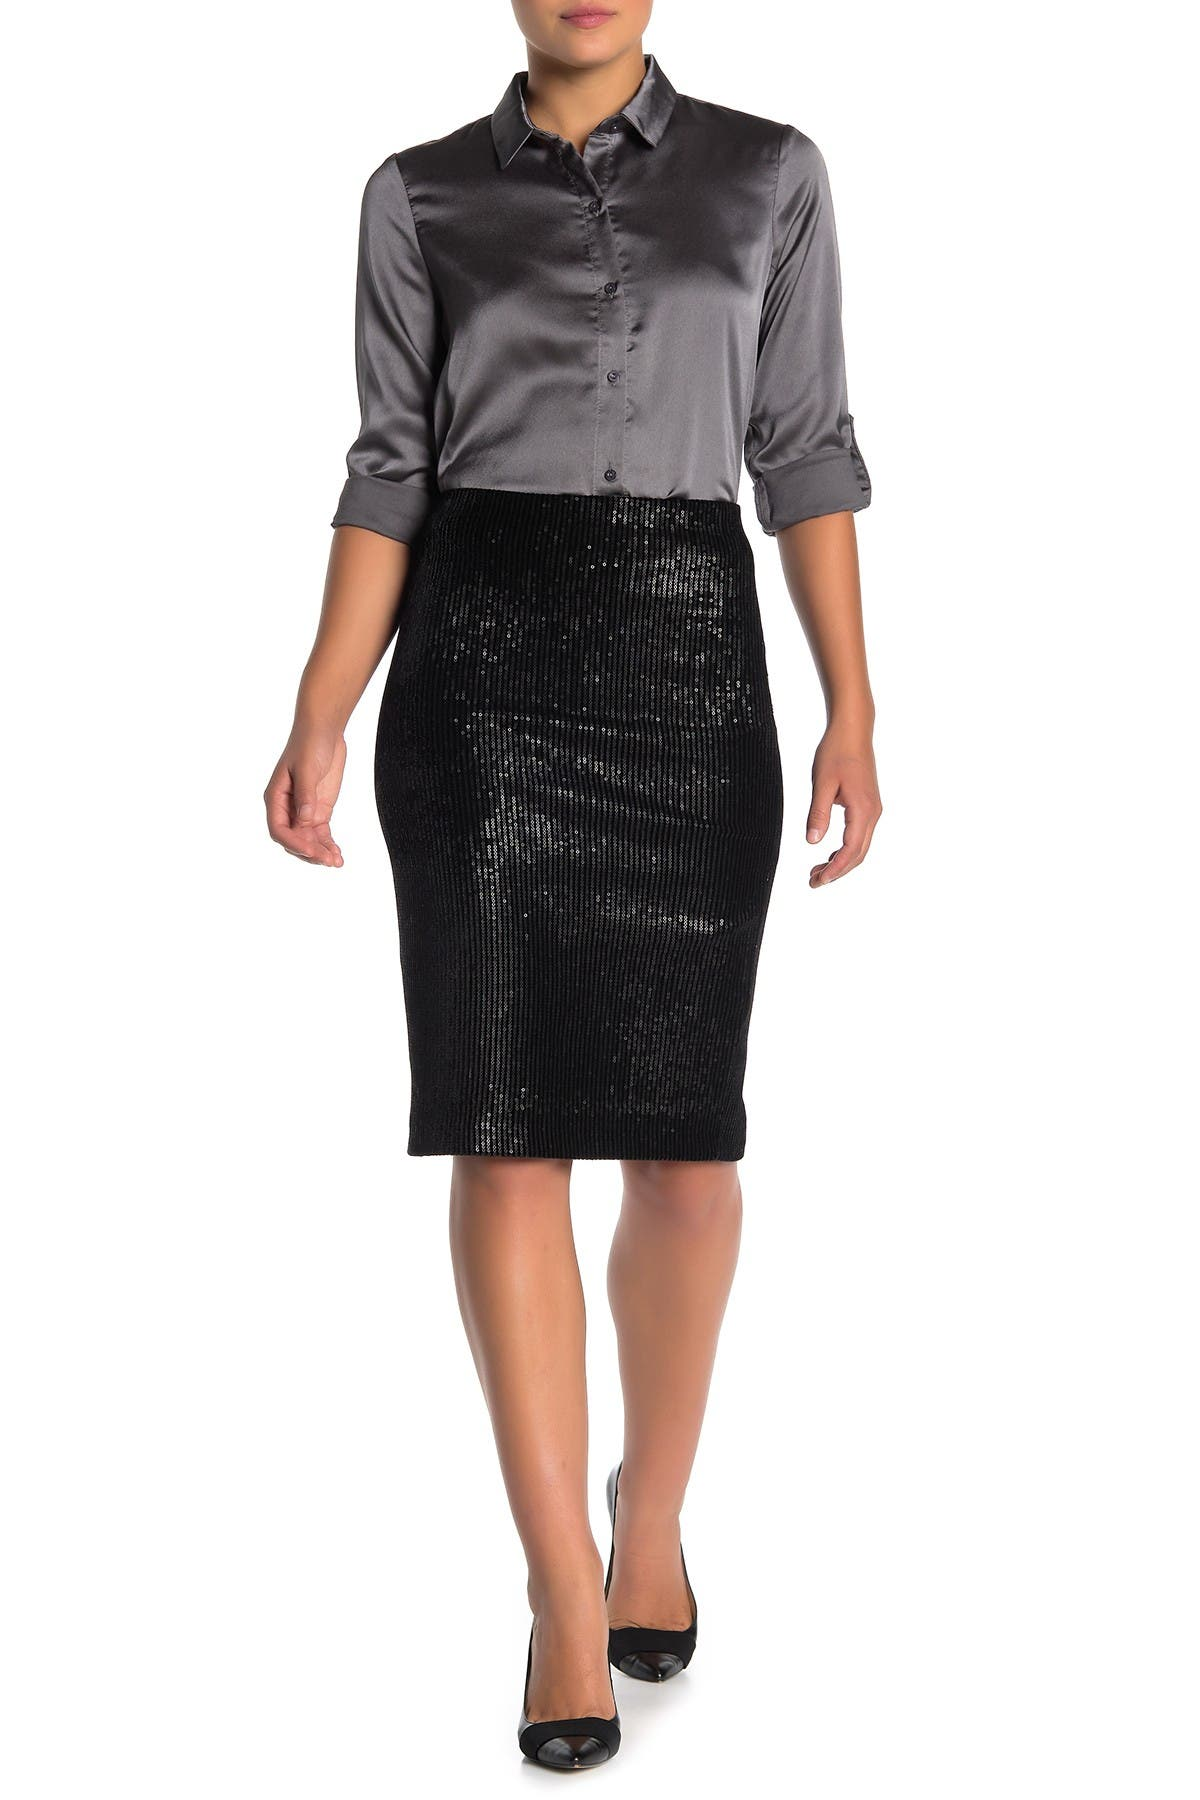 Image of Everleigh Sequin Velour Knee-Length Skirt